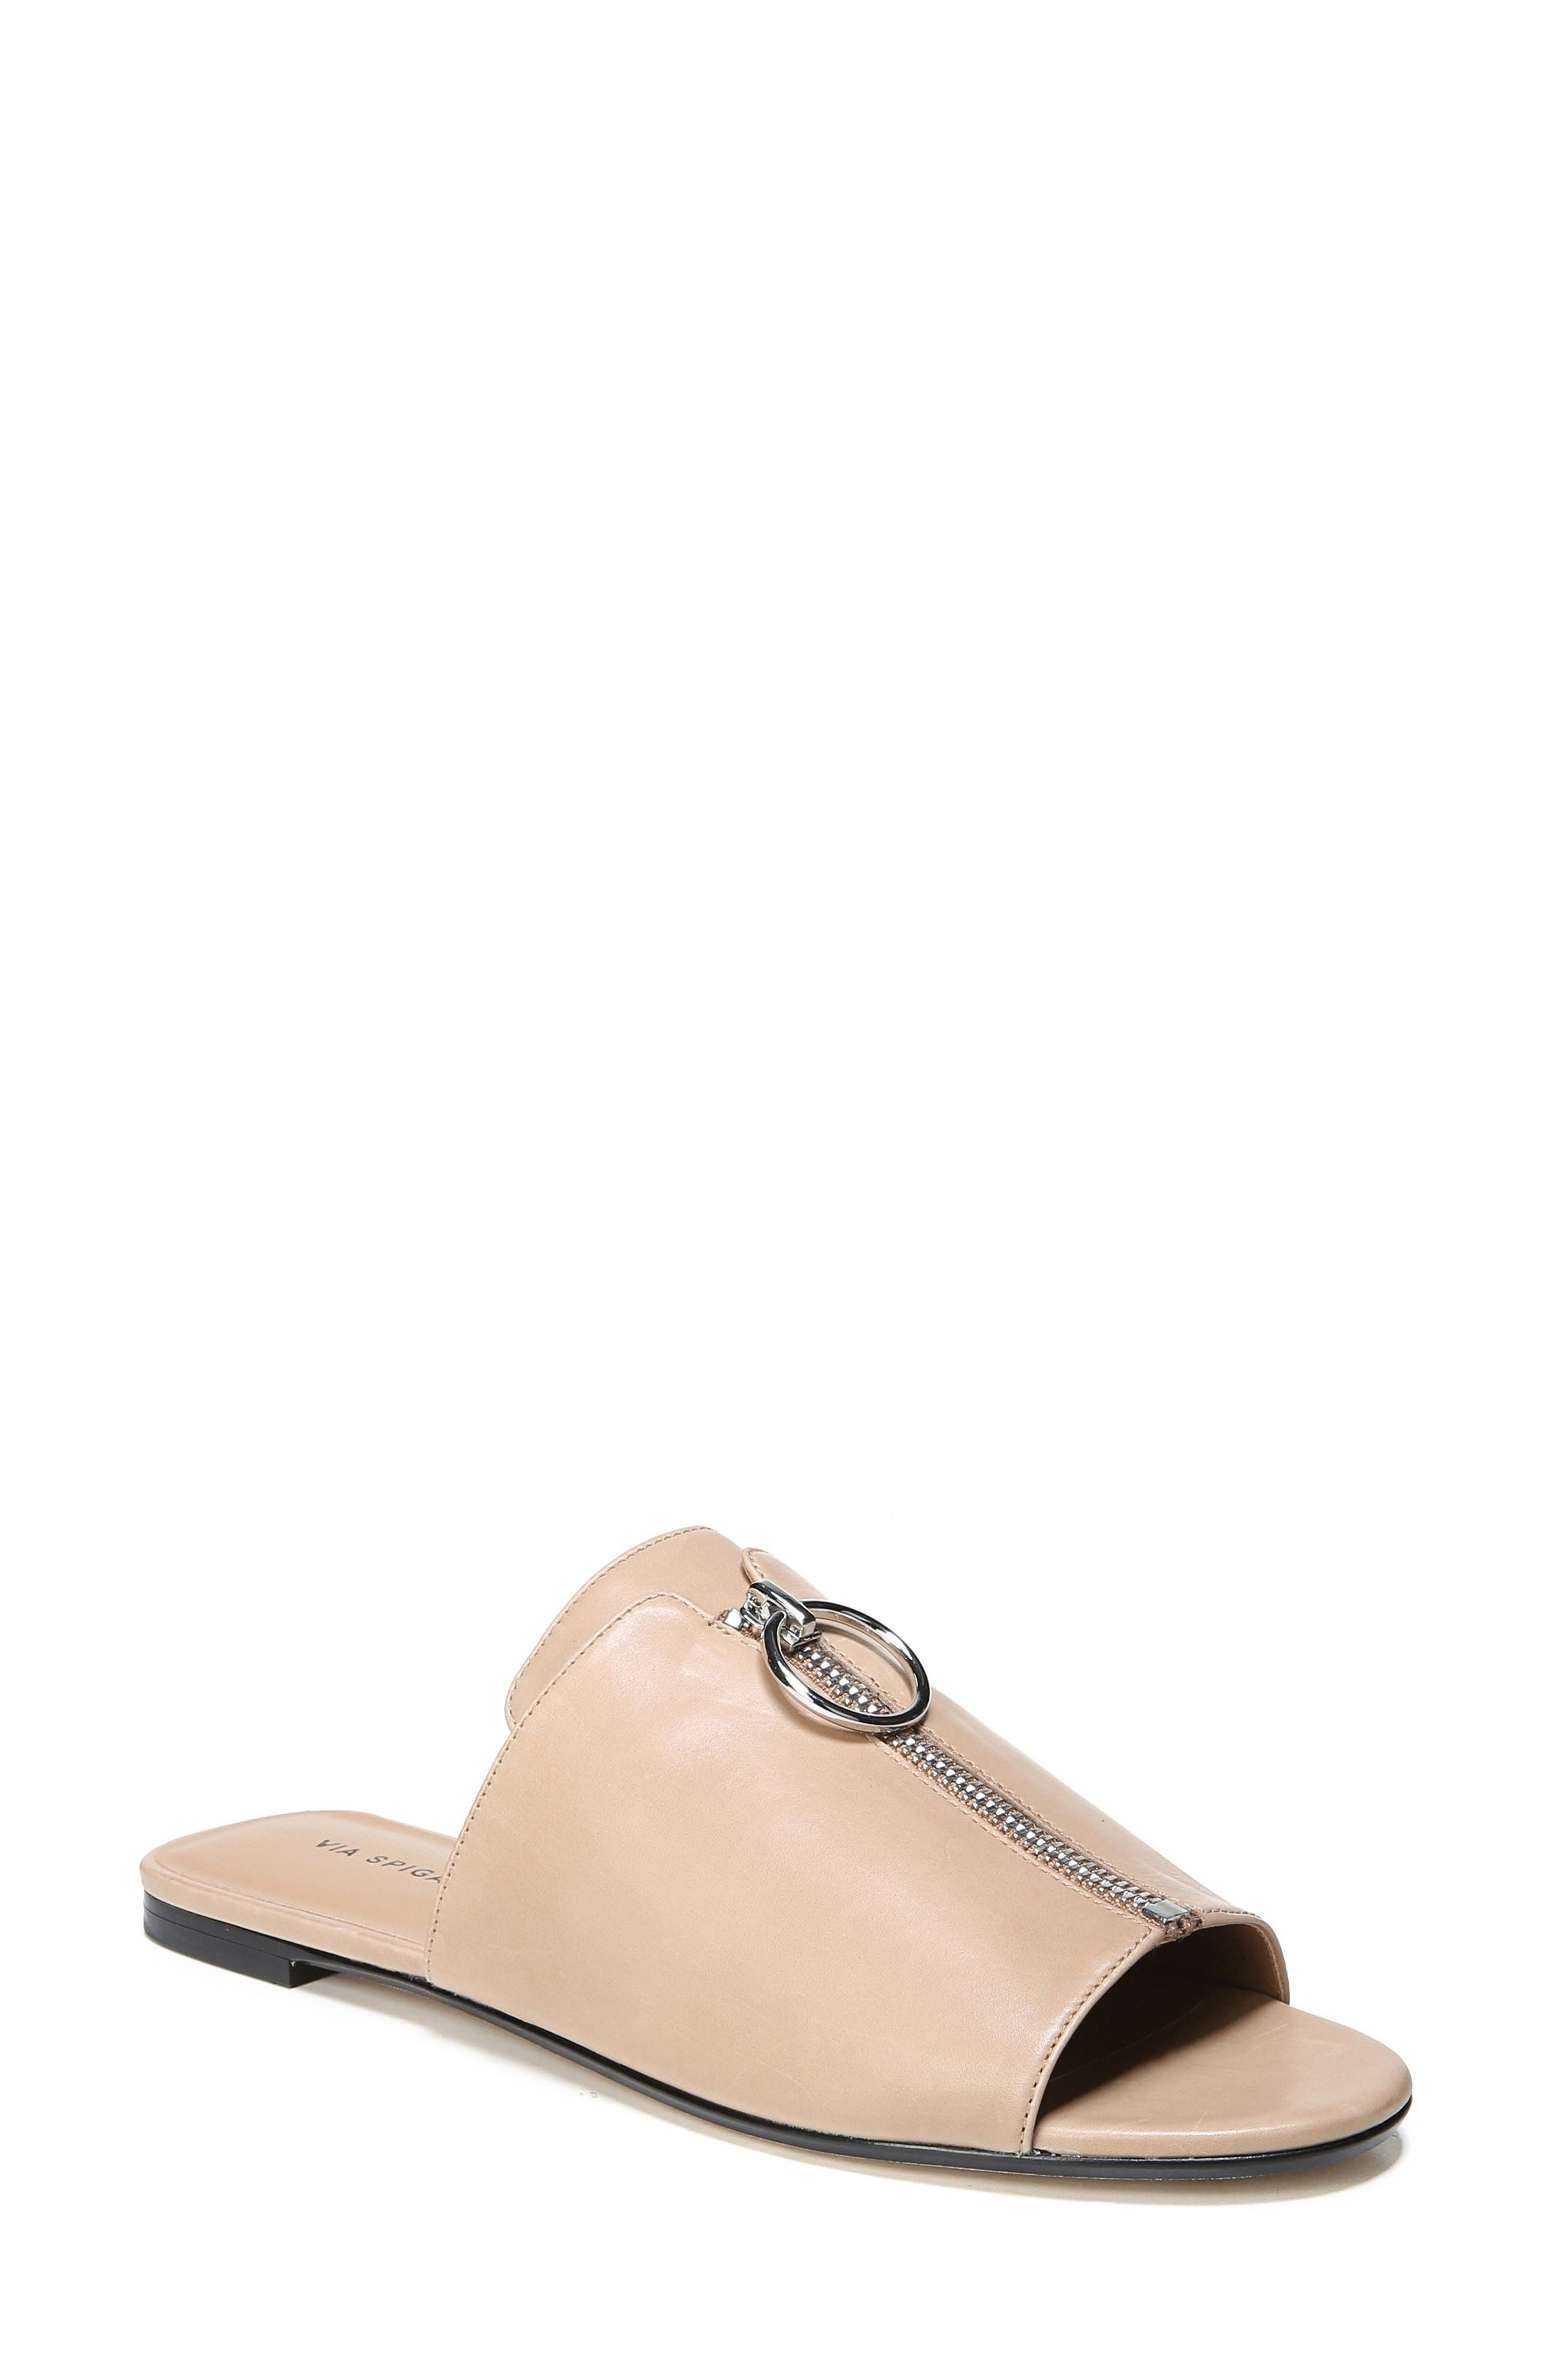 Via Spiga Hope Slide Sandal (Women)